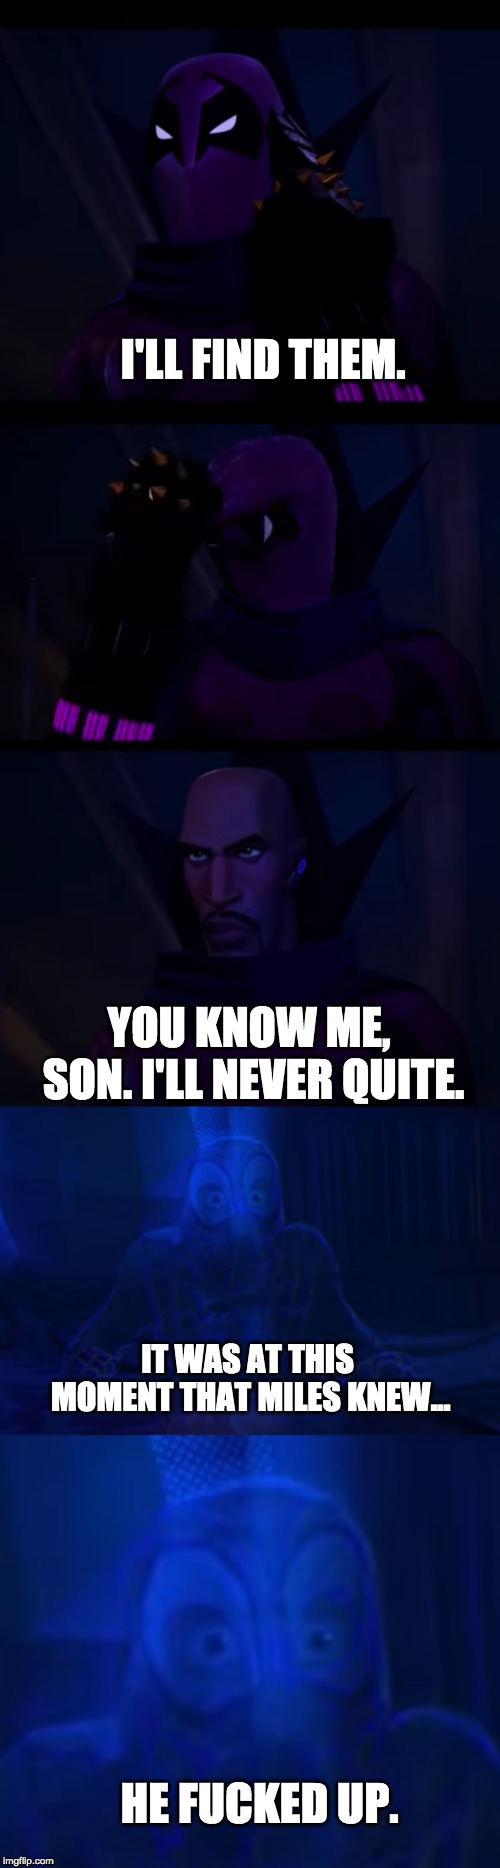 poor miles, our spider boi | I'LL FIND THEM. YOU KNOW ME, SON. I'LL NEVER QUITE. IT WAS AT THIS MOMENT THAT MILES KNEW... HE F**KED UP. | image tagged in funny memes,spider-verse,spiderman,spoiler alert,miles morales,memes | made w/ Imgflip meme maker